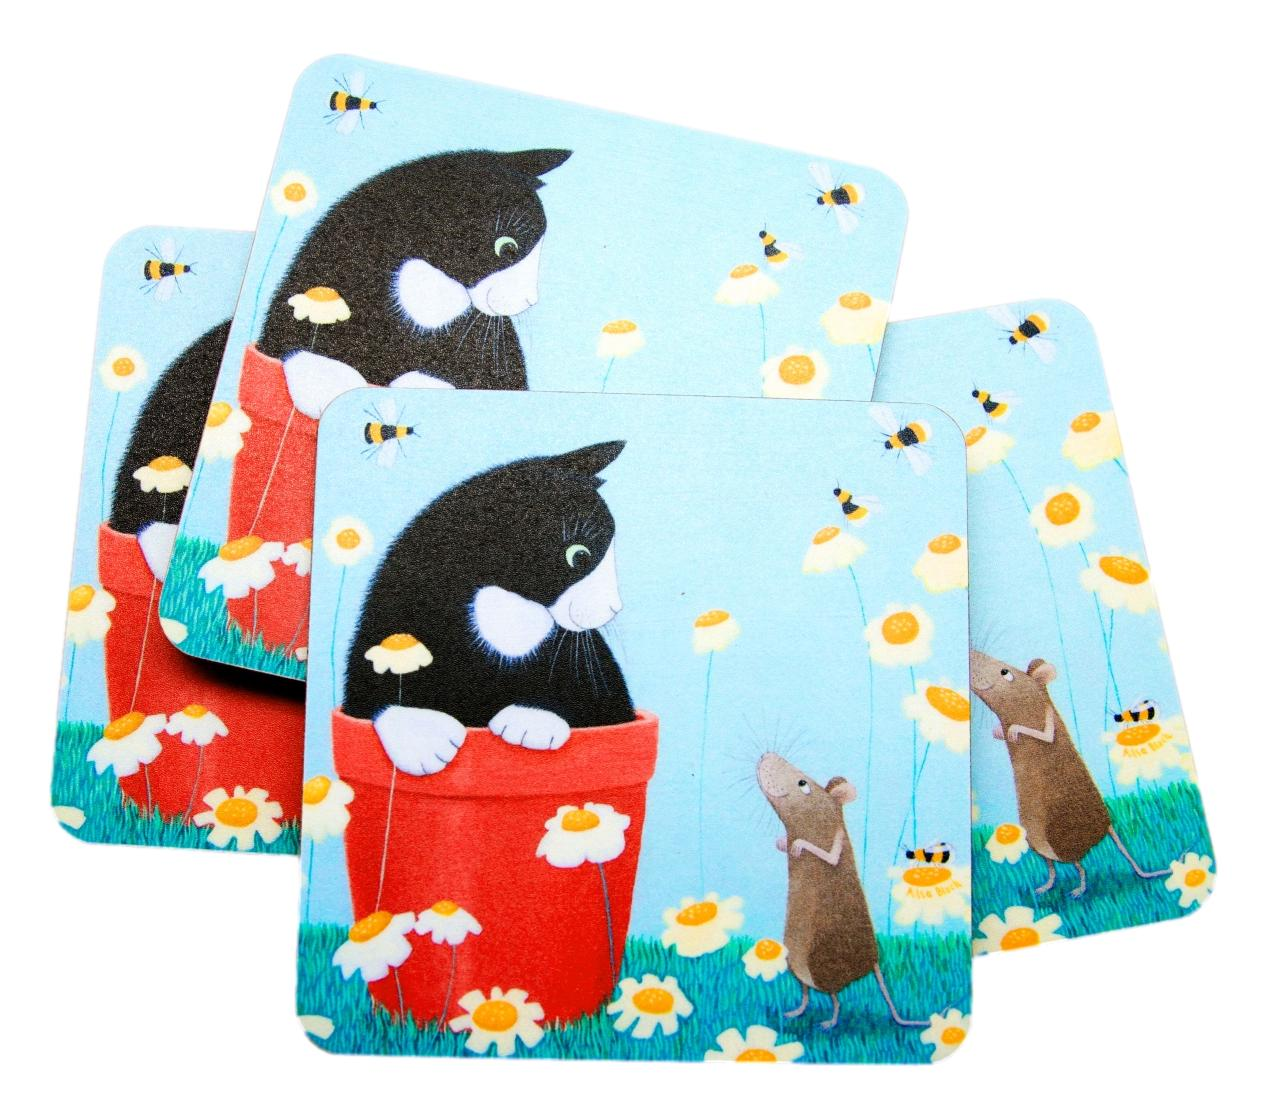 Ailsa Black Daisy Games Set of 4 Cat Coasters